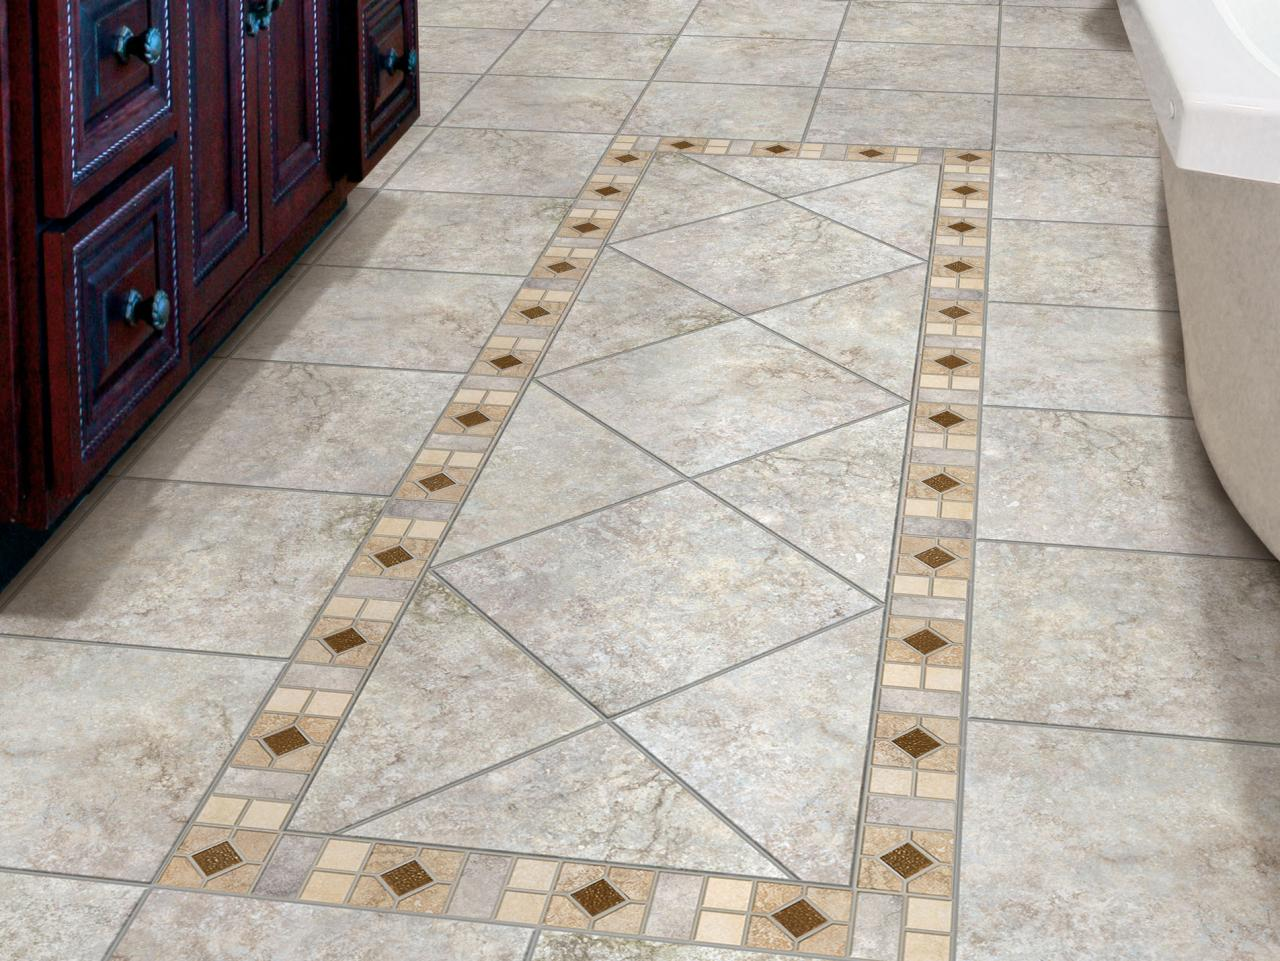 Reasons to choose porcelain tile hgtv reasons to choose porcelain tile dailygadgetfo Image collections